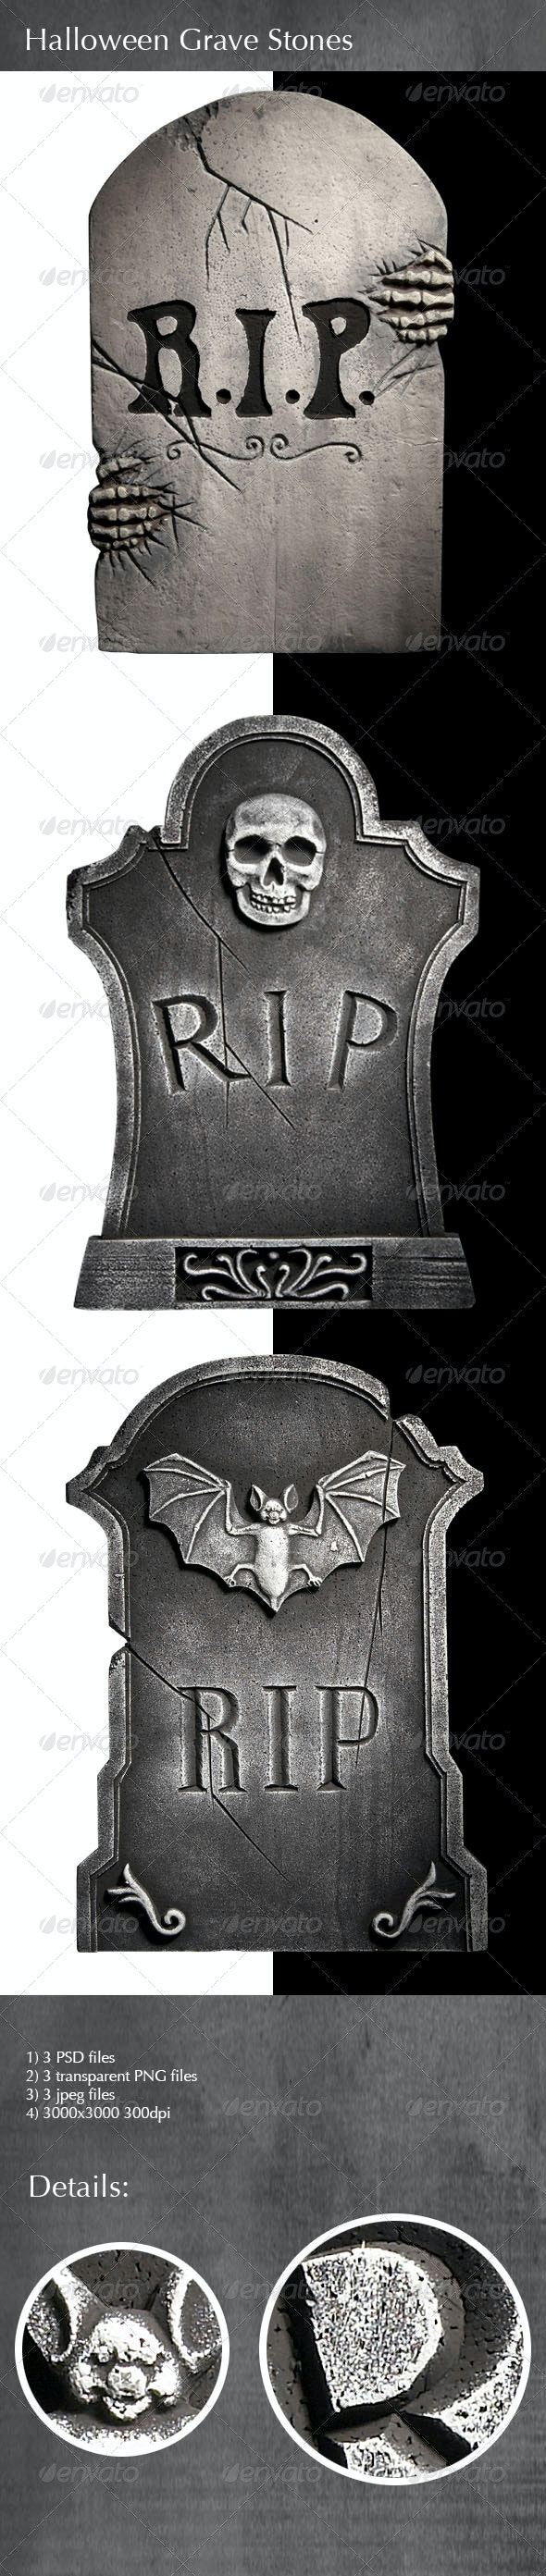 Halloween Grave Stones - Miscellaneous Isolated Objects